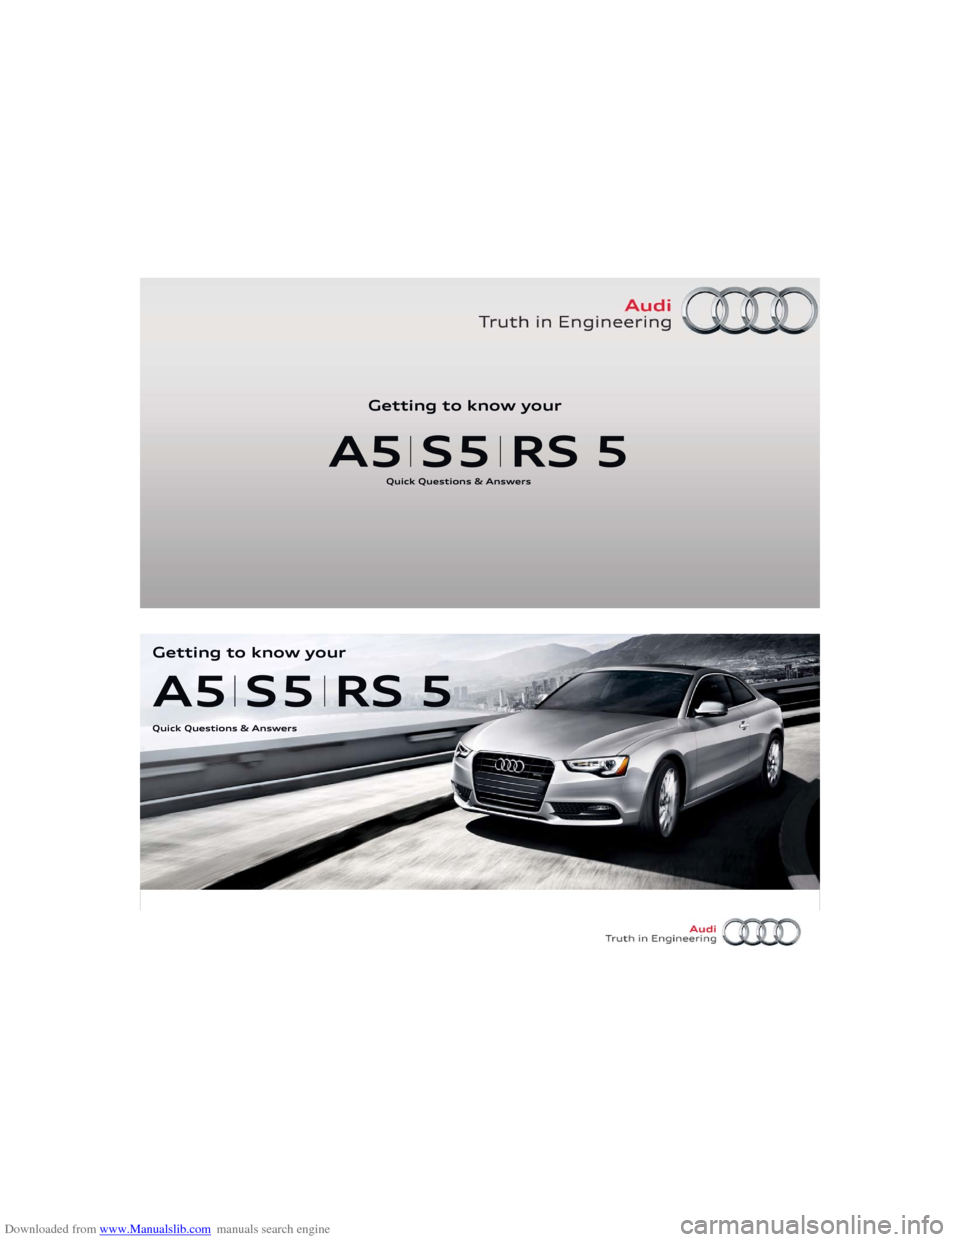 AUDI A5 2013 8T / 1.G Getting To Know Downloaded from www.Manualslib.com manuals search engine A4 S4Quick Questions & AnswersGetting to know your Quick Questions & Answers Getting to know your A5 S5 RS 5 A5 S5 RS 5Quick Questions & Answer